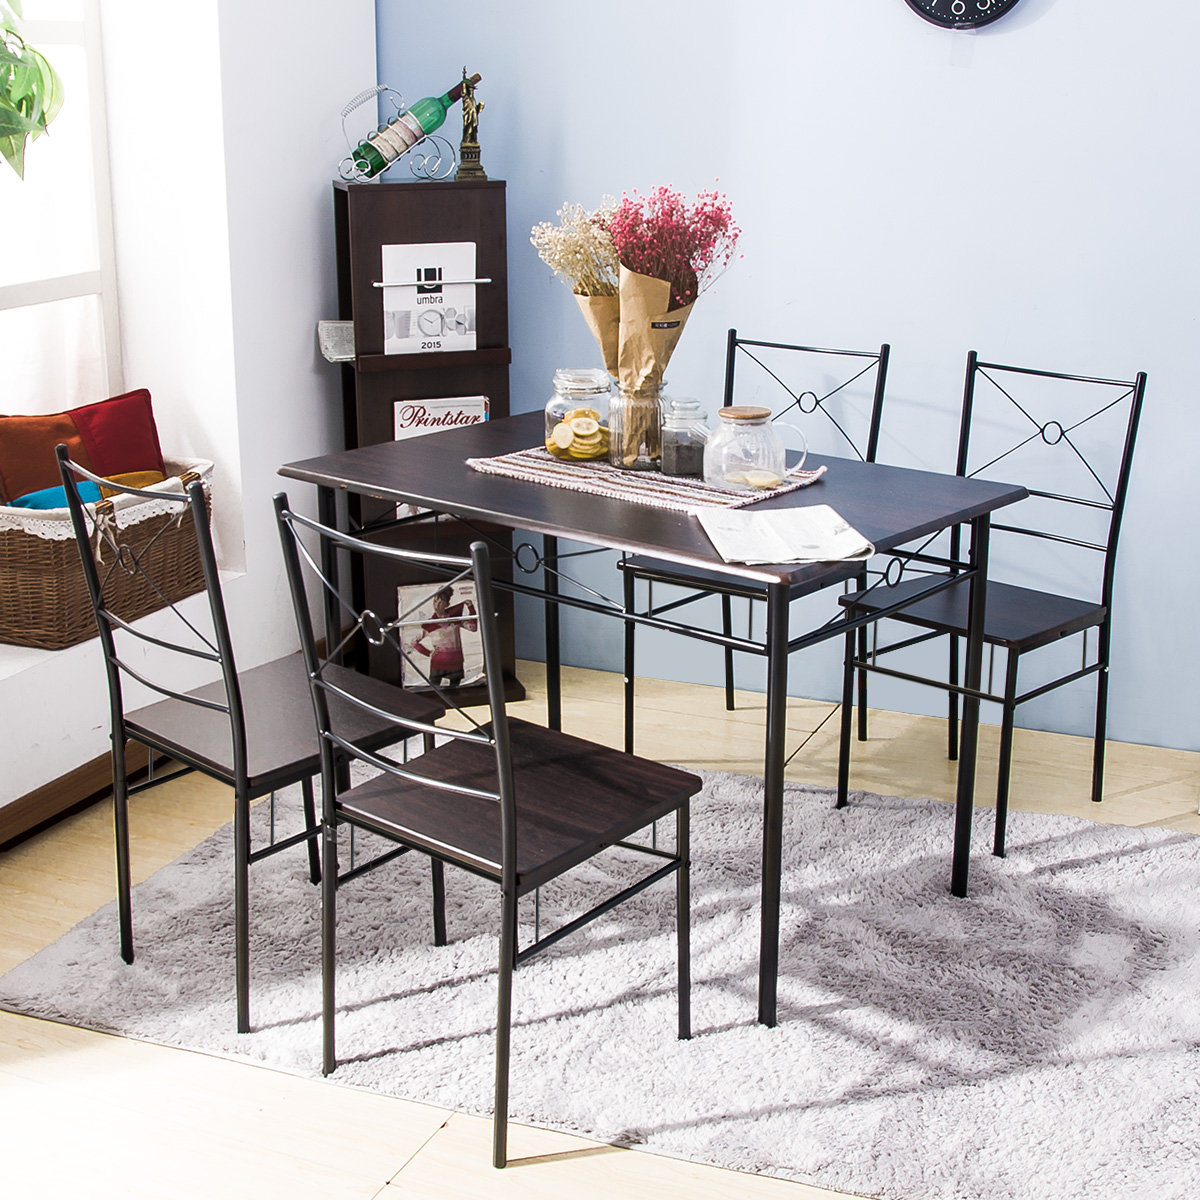 Clearance Dining Table: Clearance! 5 Piece Dining Table Set, SEGMART Modern Wooden